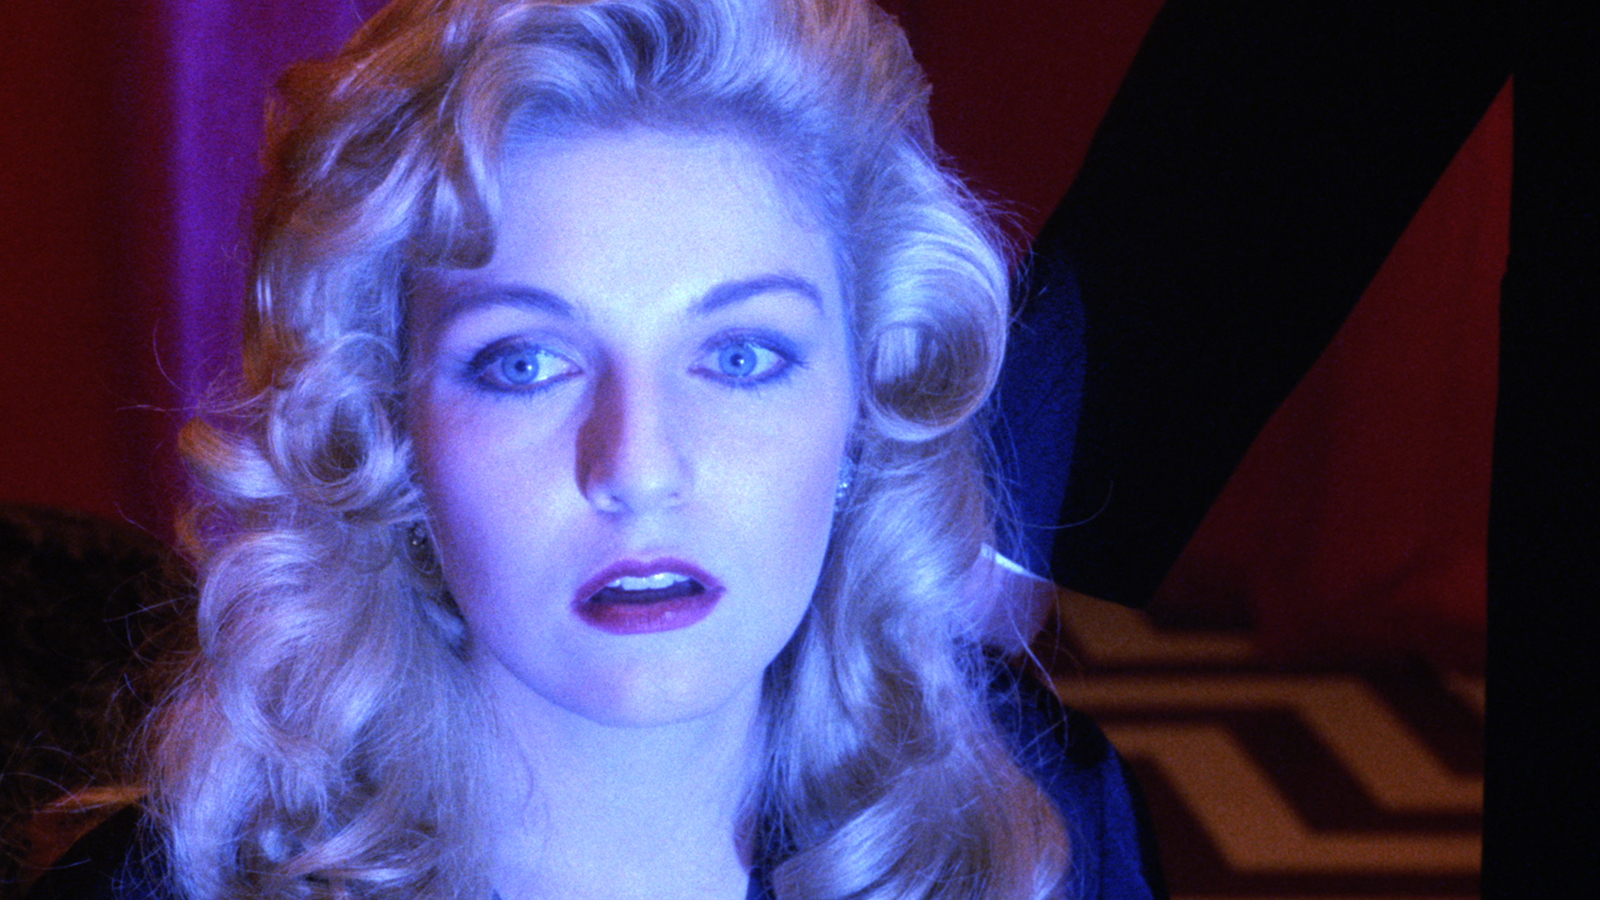 =18. Twin Peaks: Fire Walk with Me